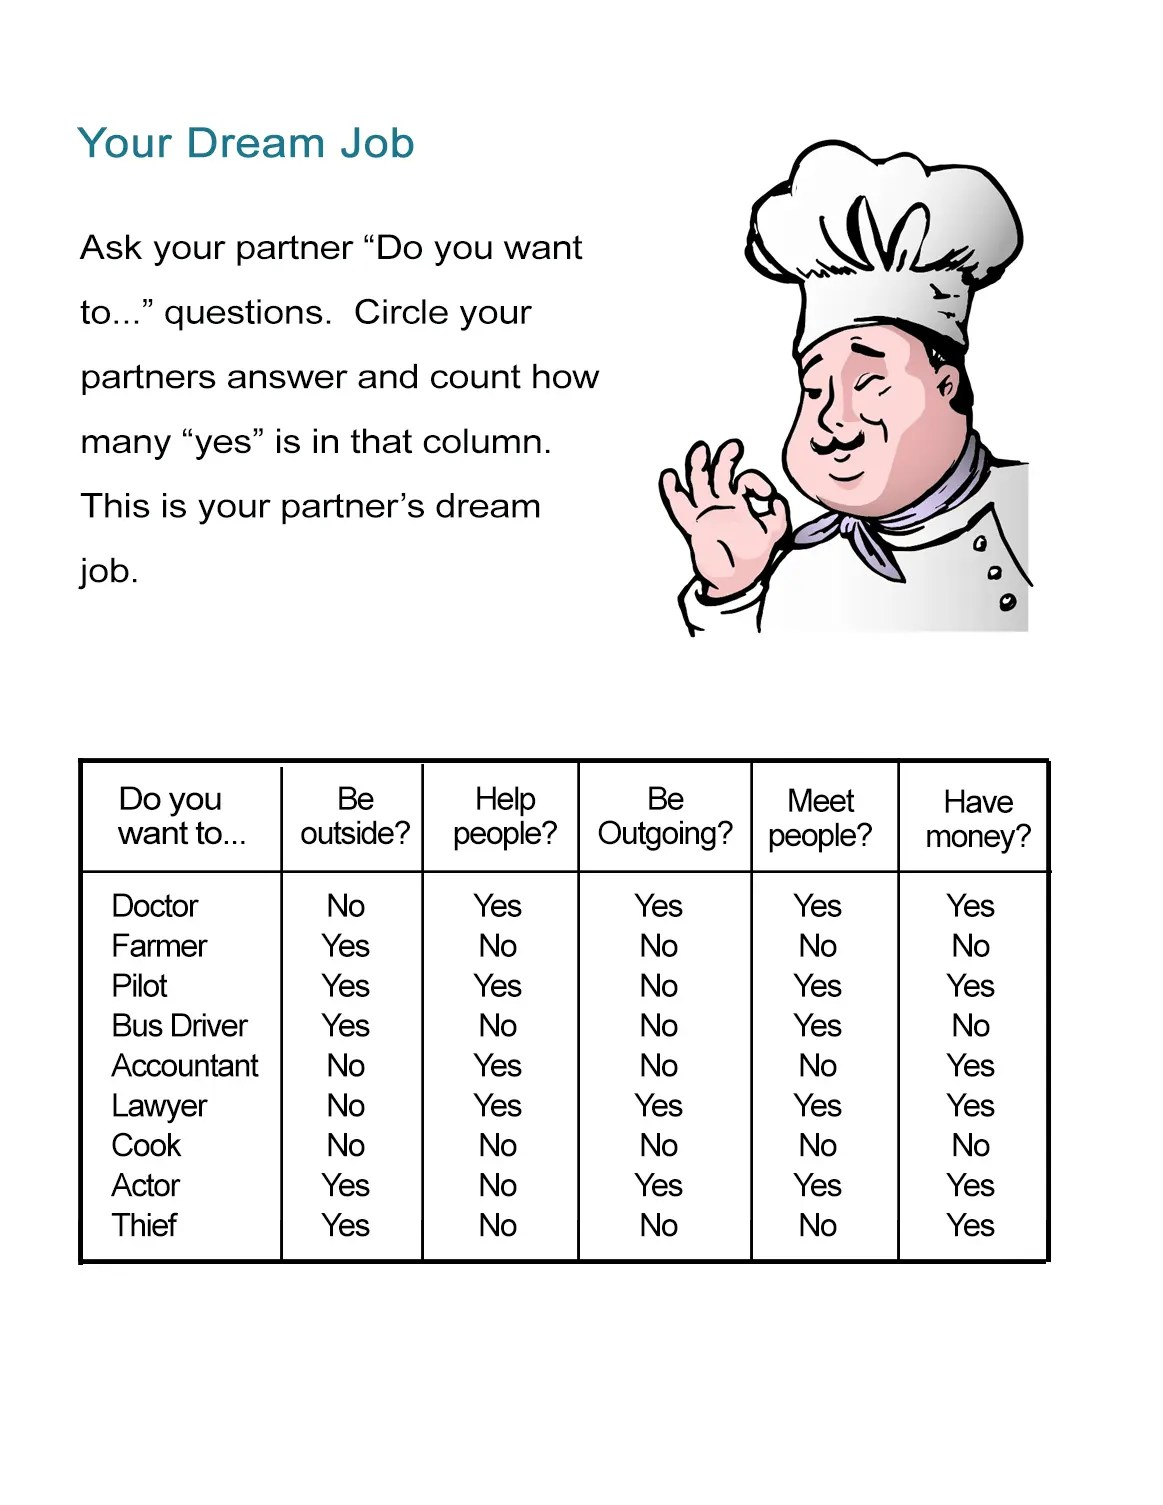 Your Dream Job Worksheet What Do You Want To Be When You Grow Up